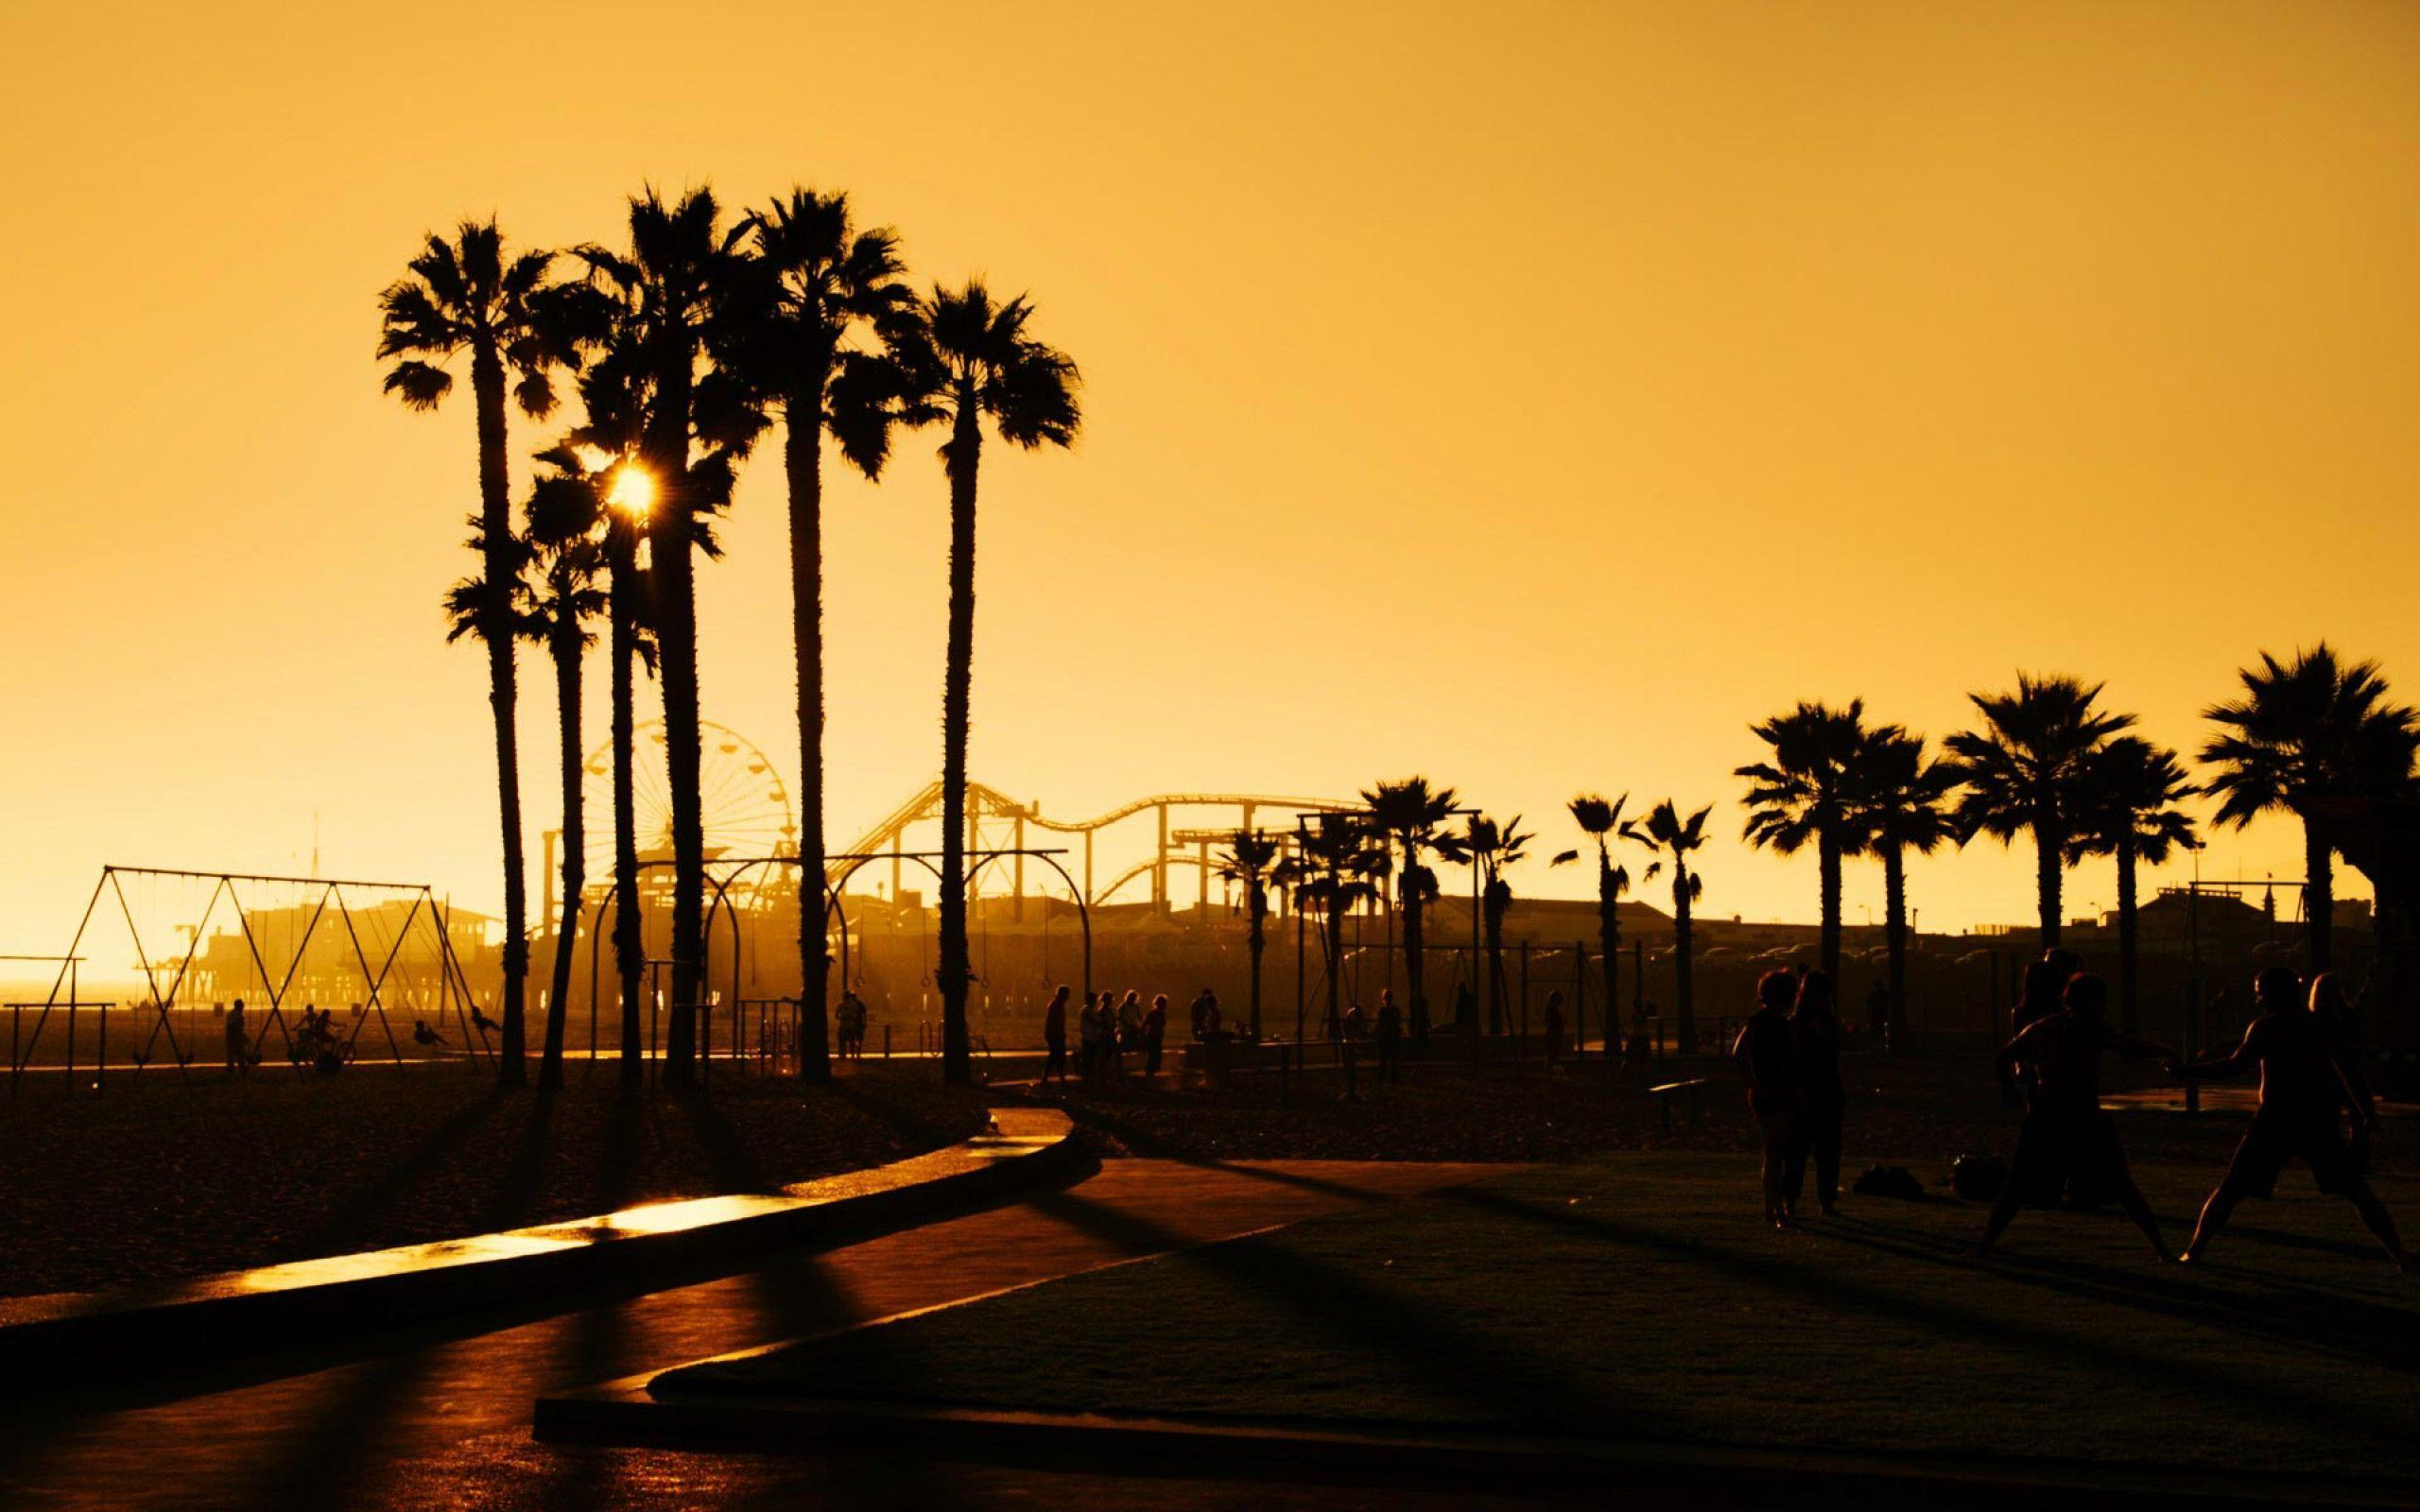 71] California Beach Wallpaper on WallpaperSafari 2560x1600